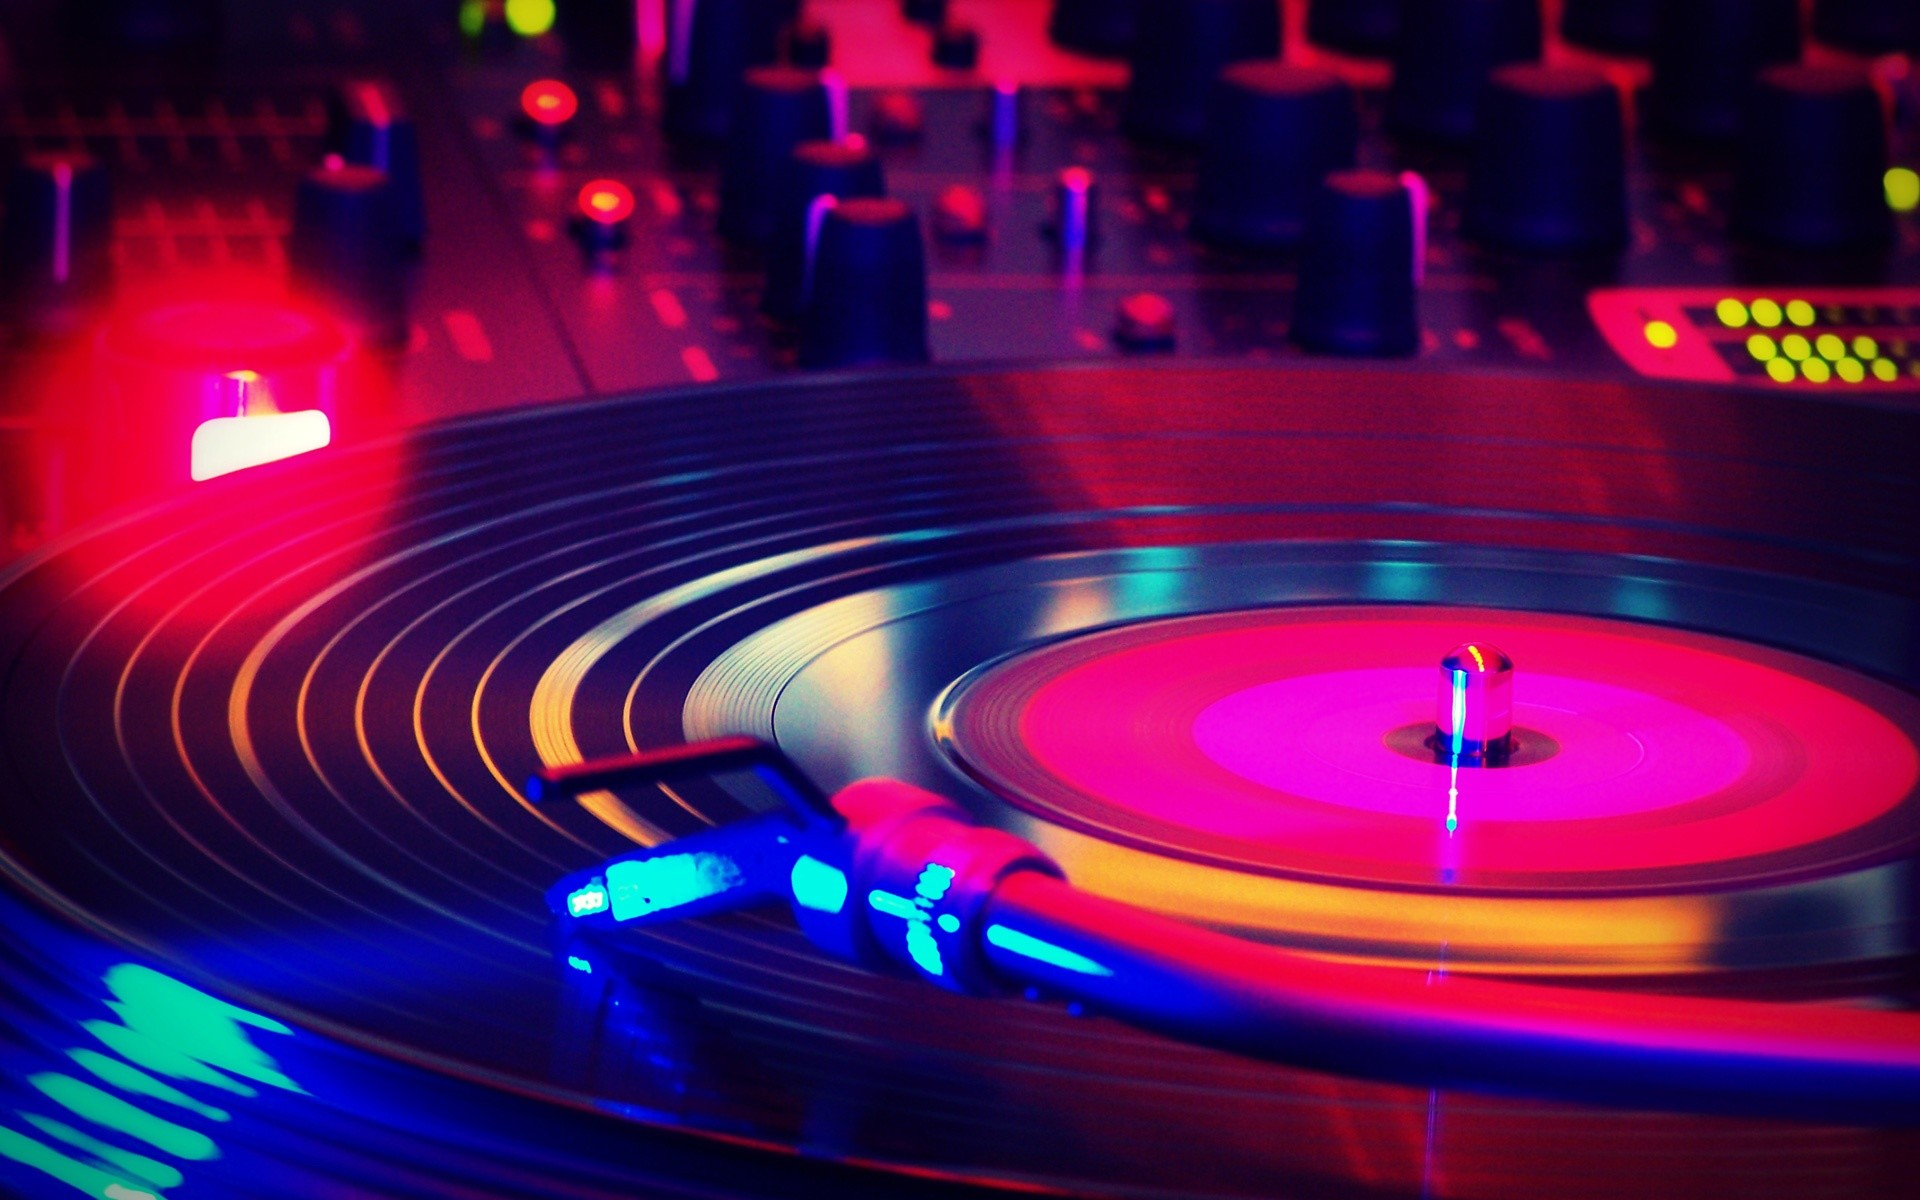 Turntables Wallpaper | … turntable record spinning fast on music desktop  wallpaper music and